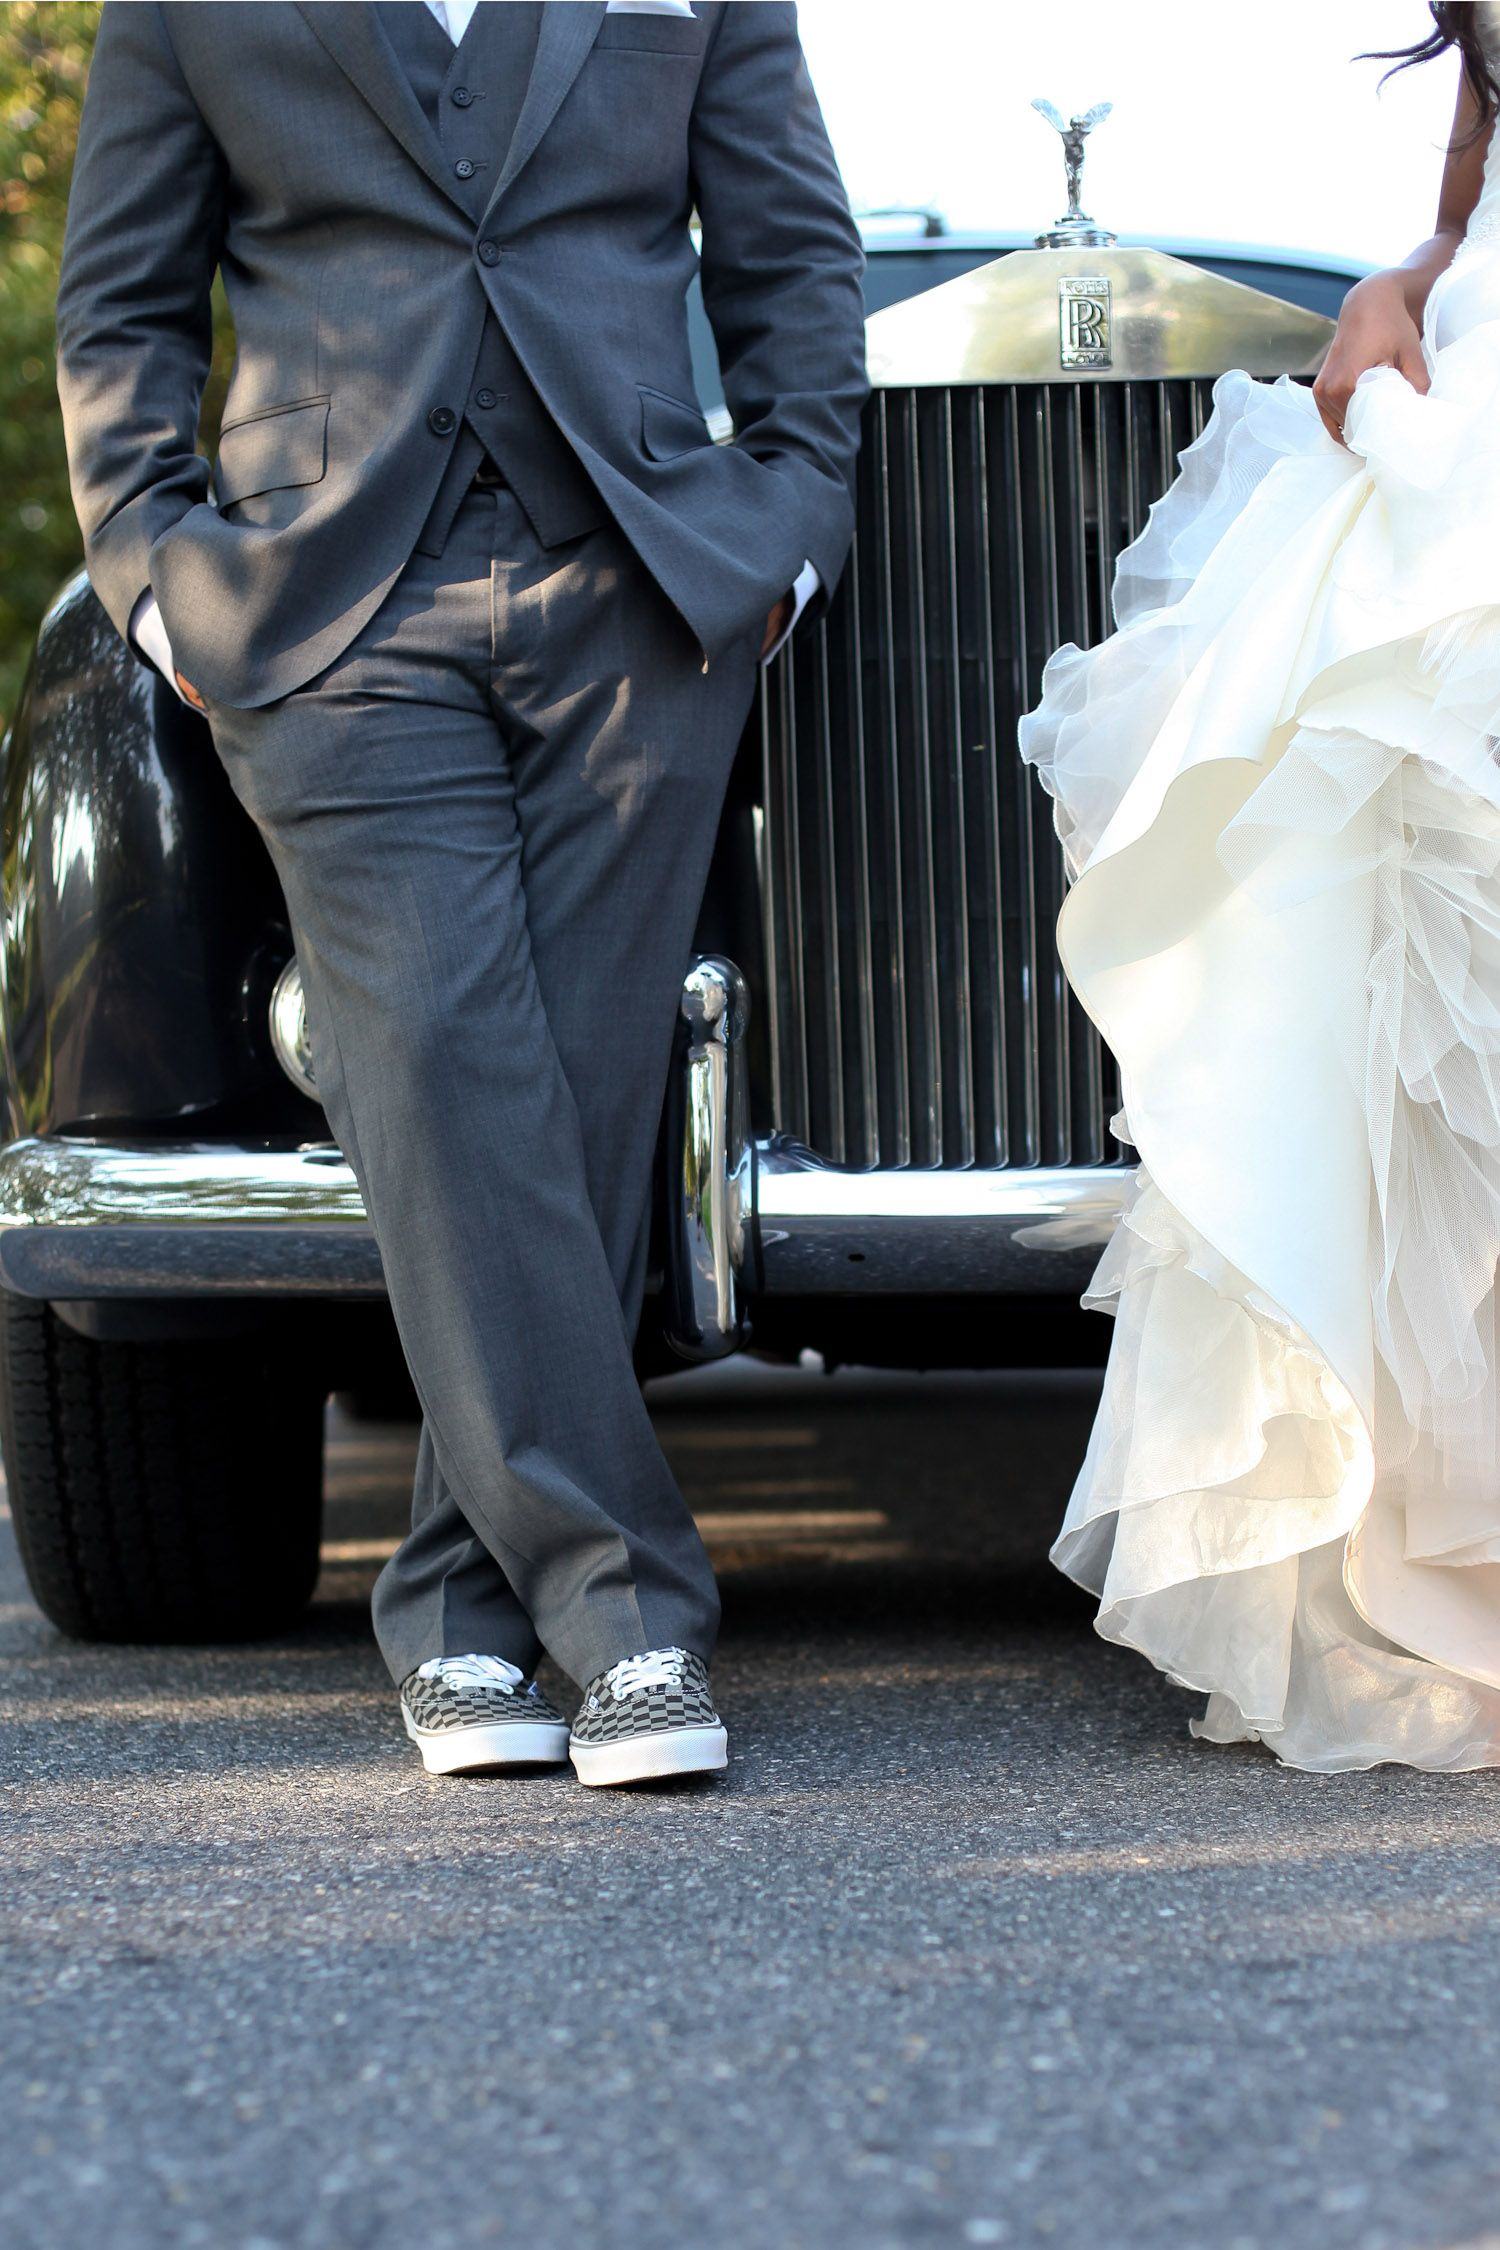 Vans W A Suit Groom Shoes Orthodox Wedding